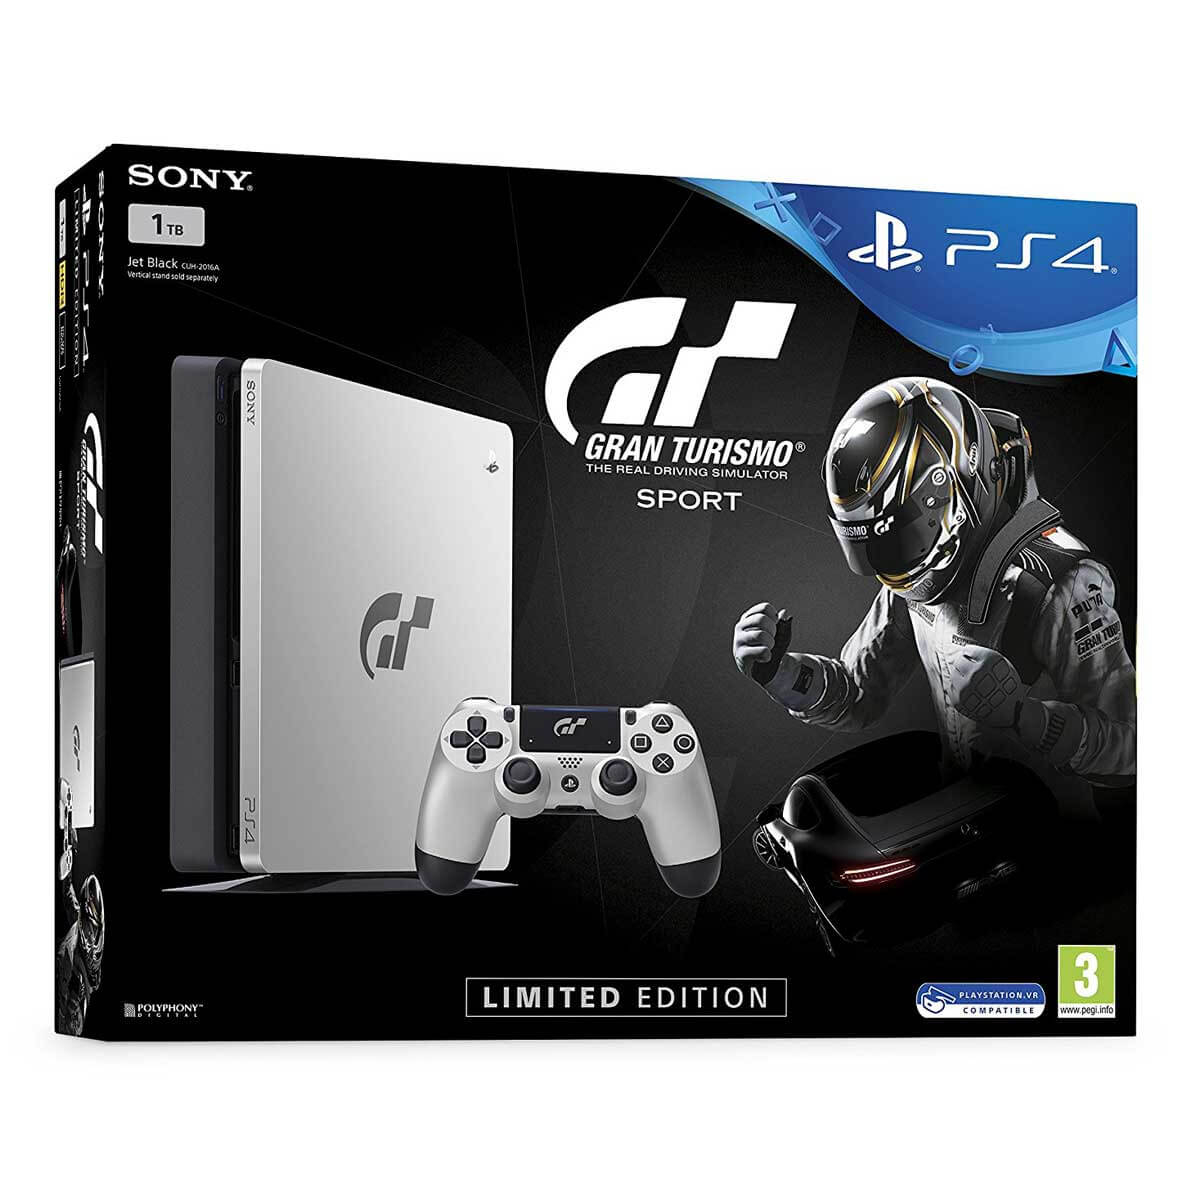 PS4 1TB Gran Turismo Sport Limited edition